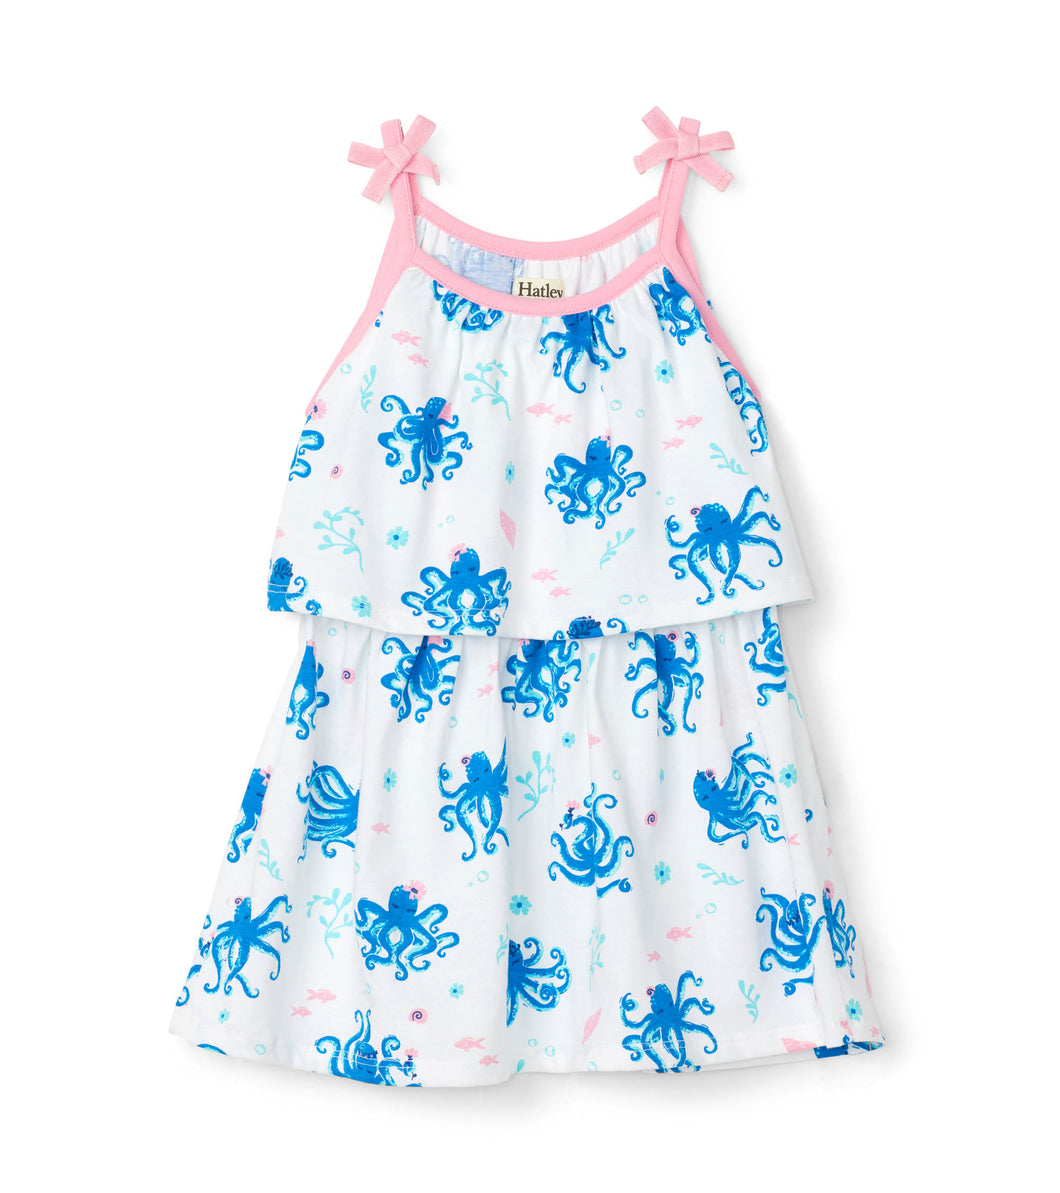 Hatley Pretty Octopuses Layered Dress